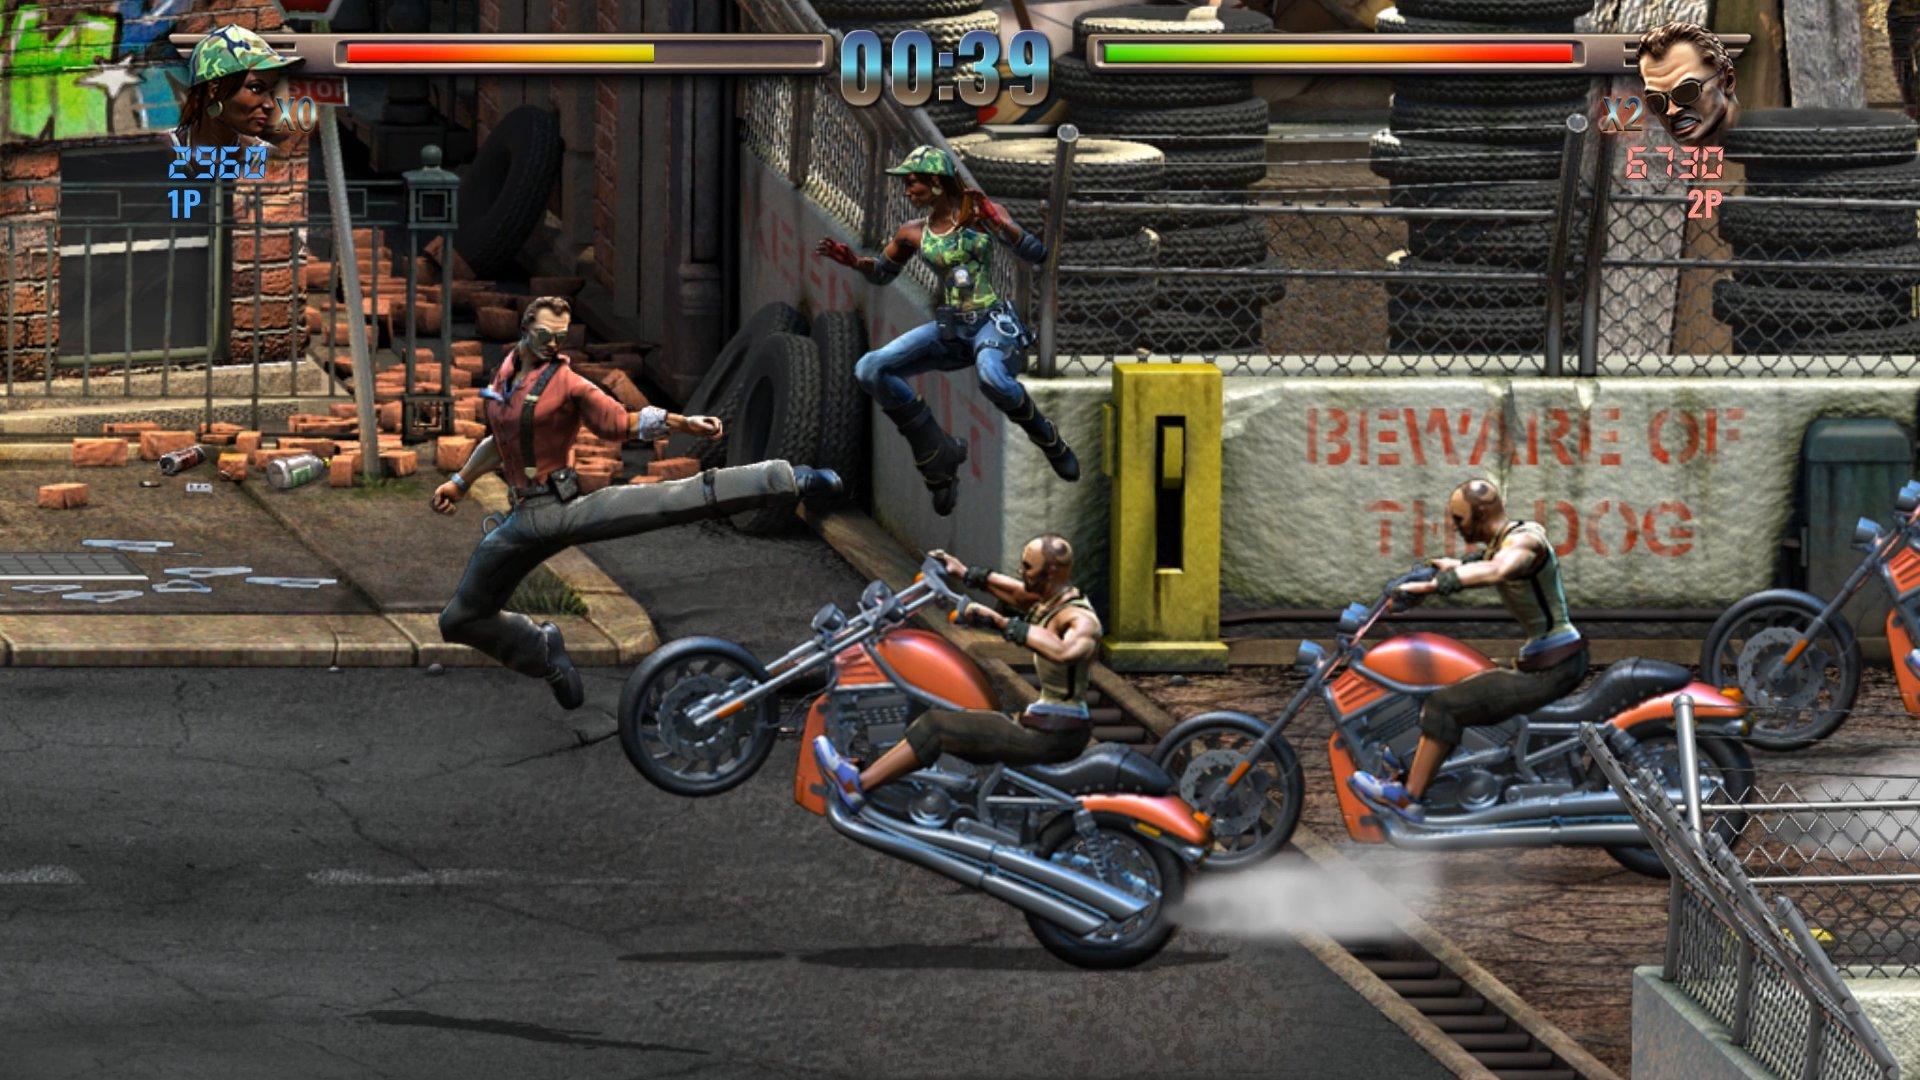 Rick-and-Nikki-Bikes-raging-justice